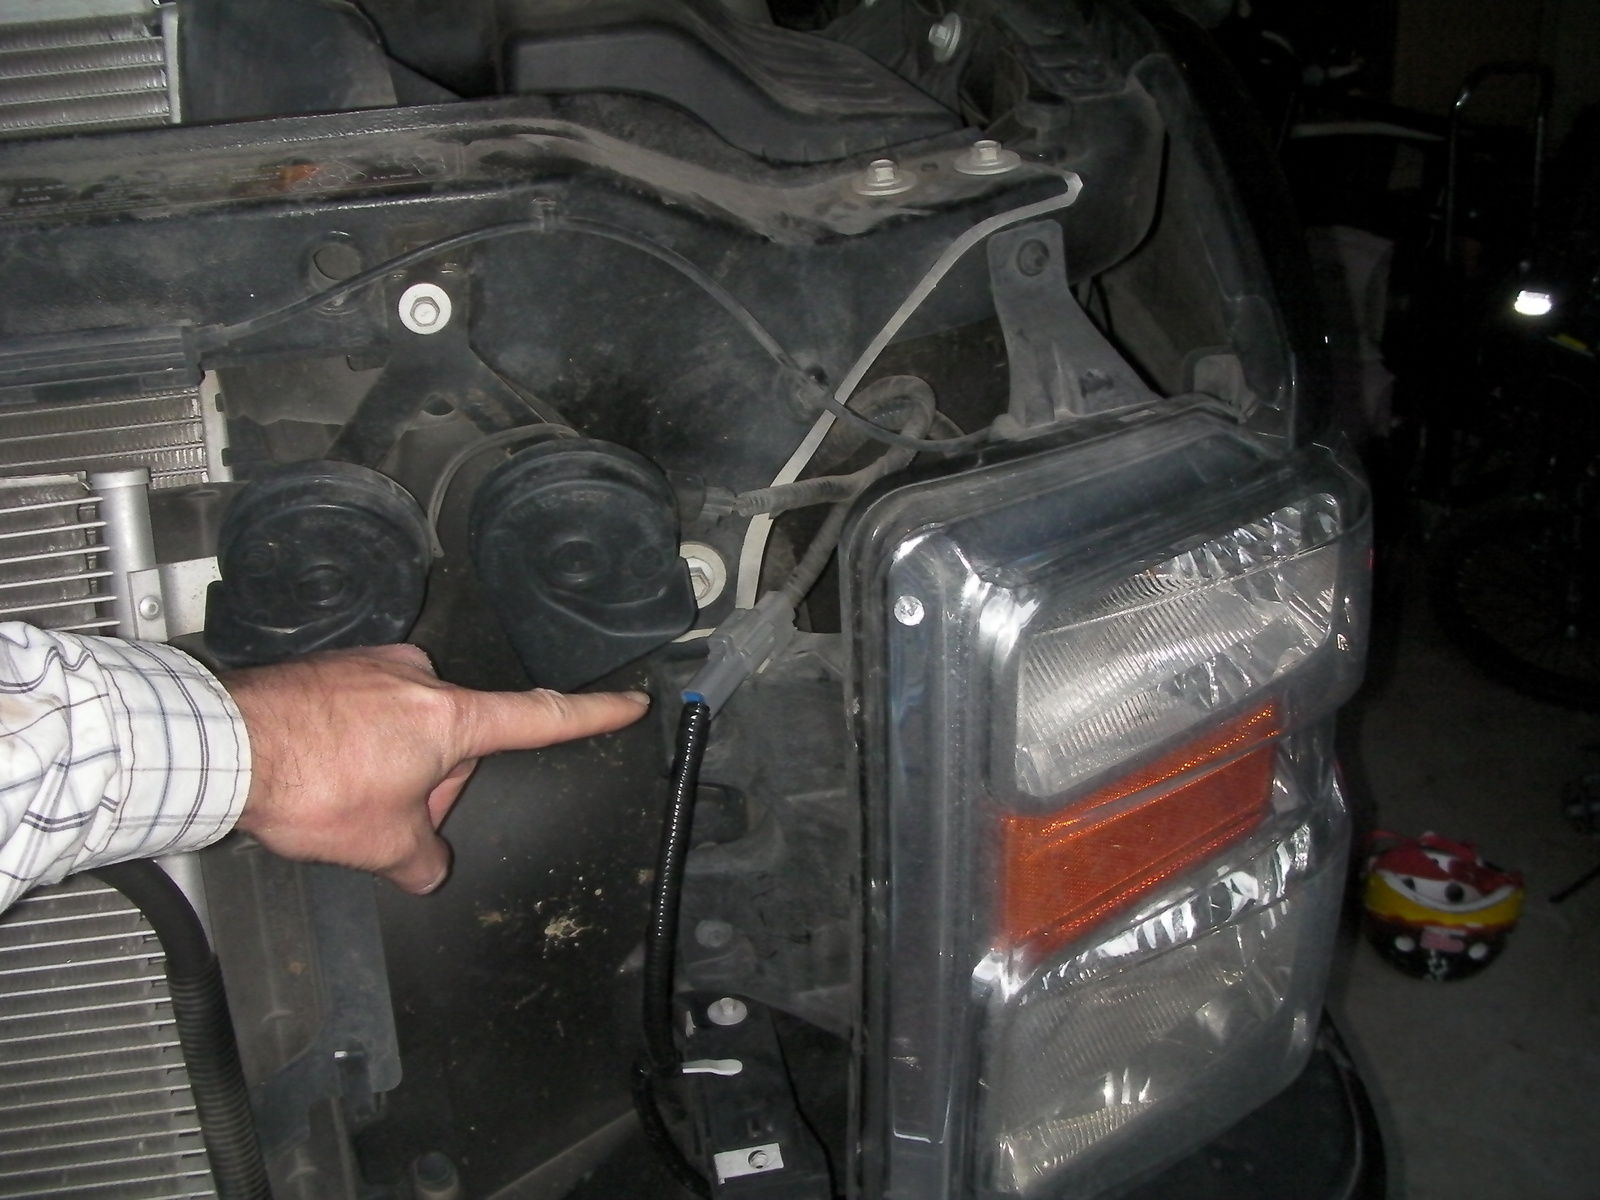 Ford F-250 Super Duty Questions - Why don't my newly installed fog lights  turn on? - CarGurus